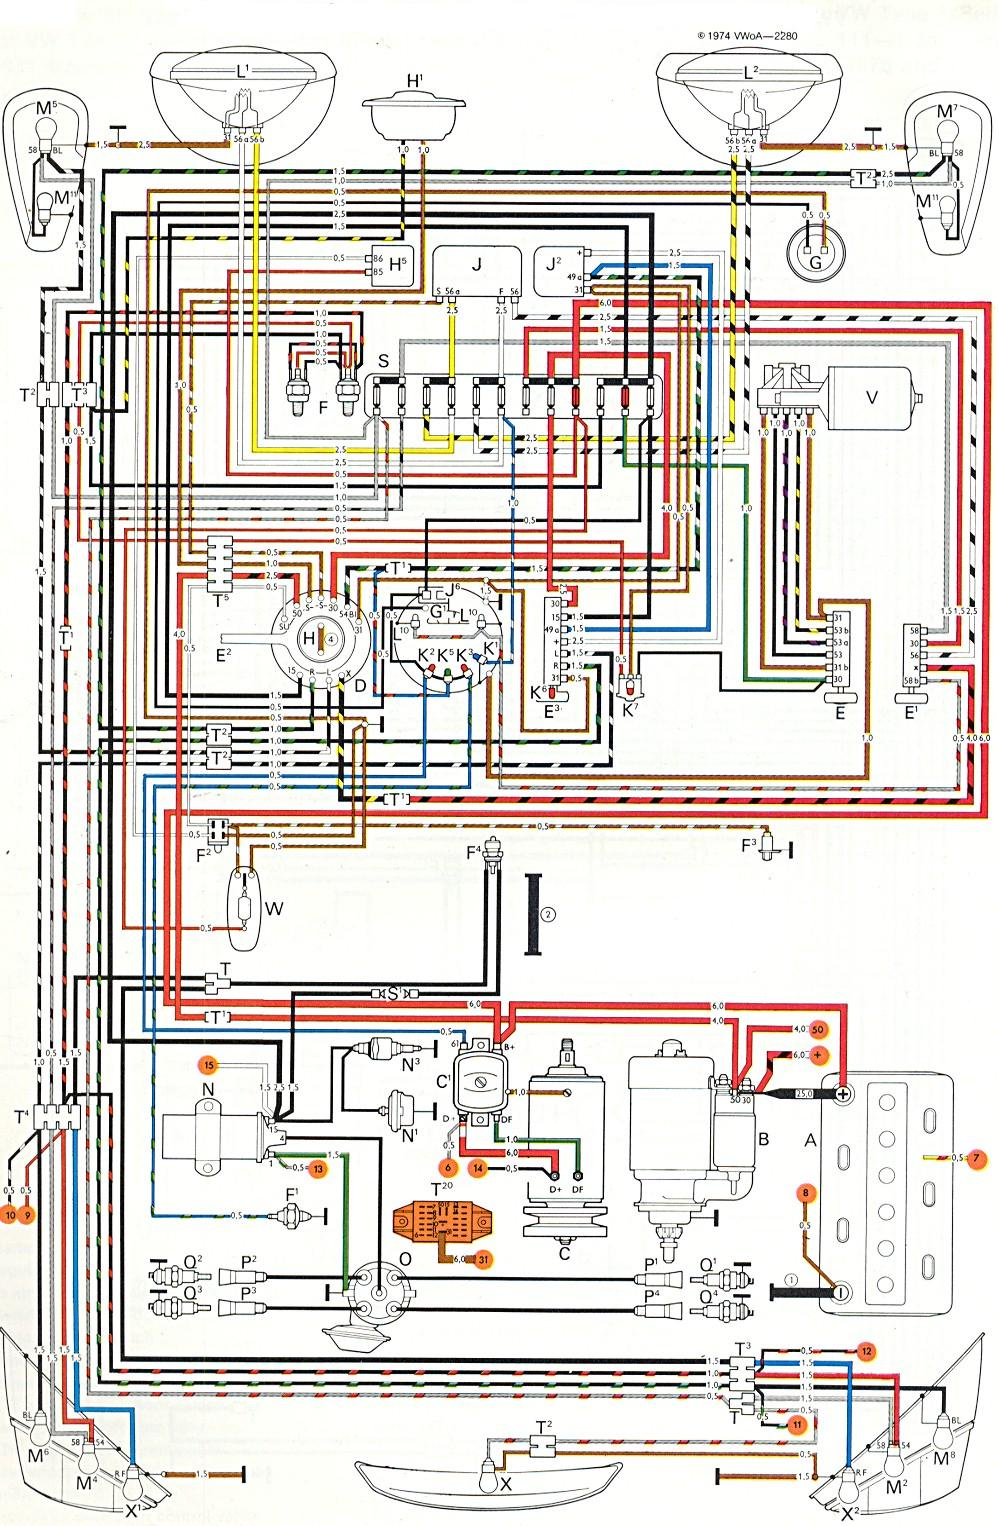 Ul Wiring Diagram besides Fuel Shutdown Solenoid Woodward Sa 2606 A in addition 72 Chevy C10 Fuel Line Diagram also 1381193 besides 1947 Chevrolet Wiper Vacuum Diagram. on 72 ford wiring diagrams